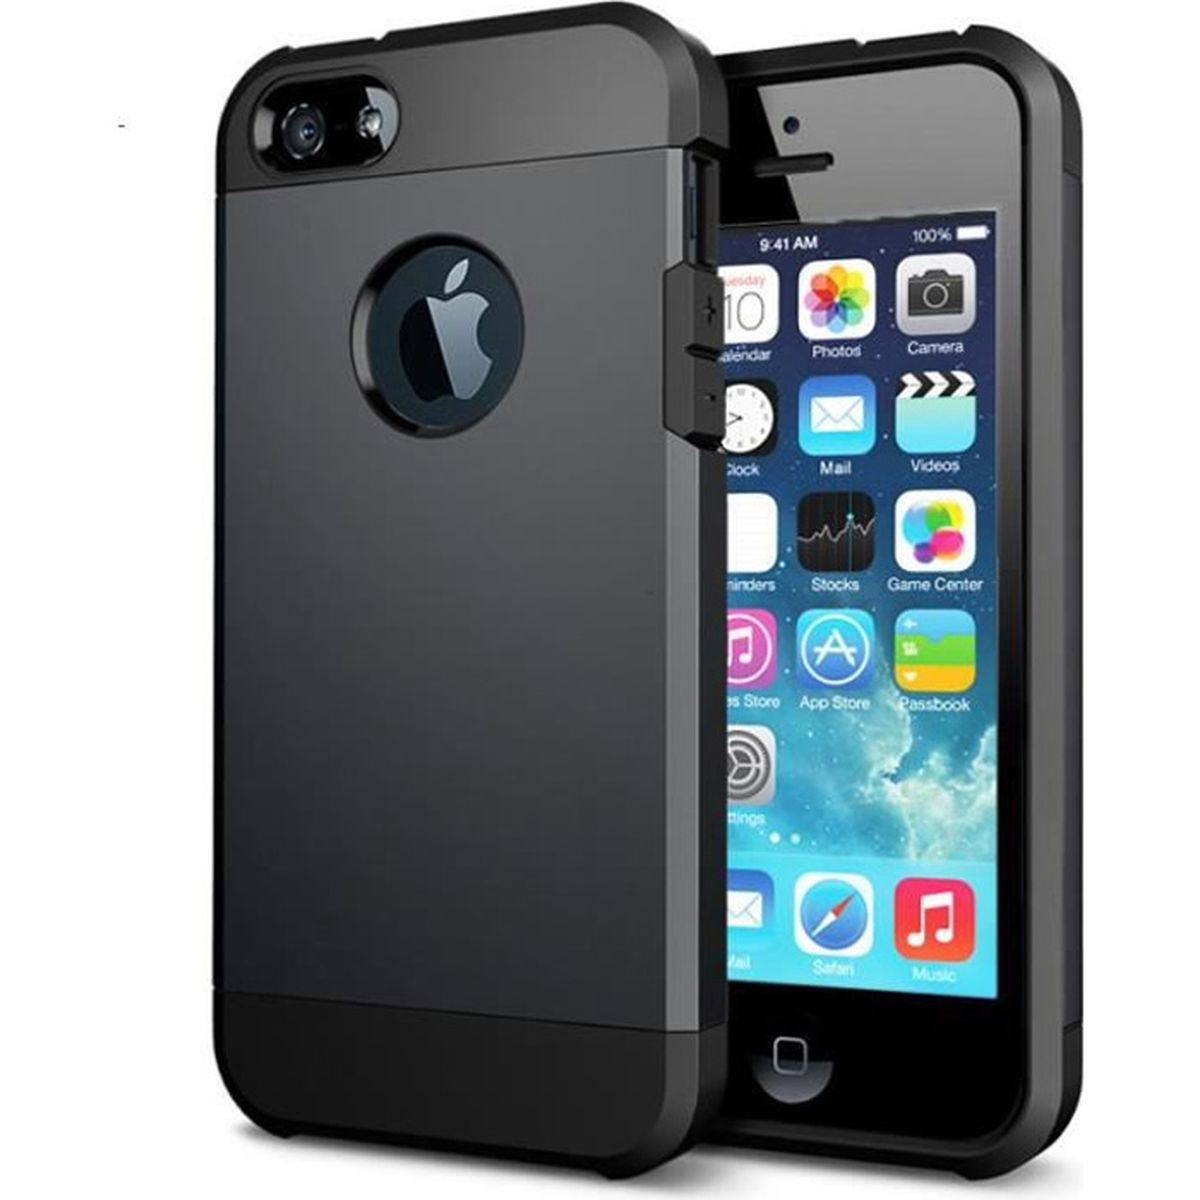 coque etui antichoc armor pour iphone 4 4s noir coussin d. Black Bedroom Furniture Sets. Home Design Ideas